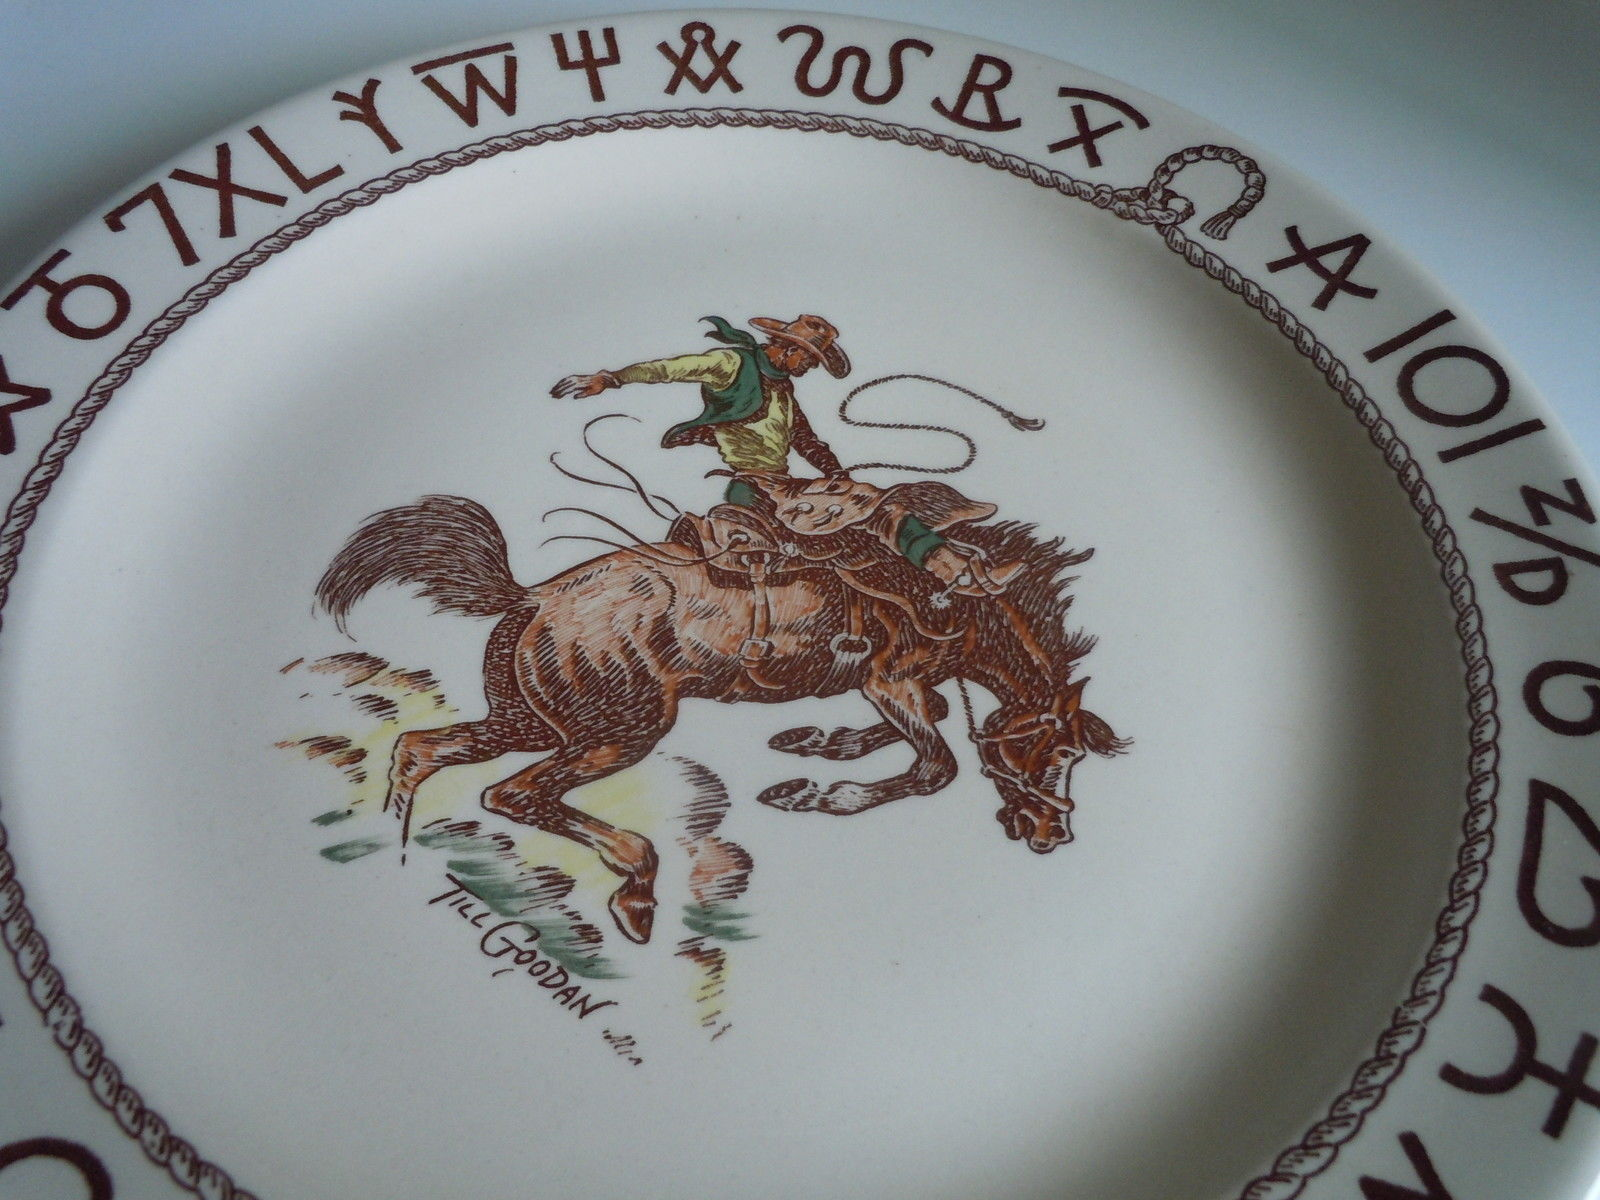 Wallace Rodeo Dinner plate image 2